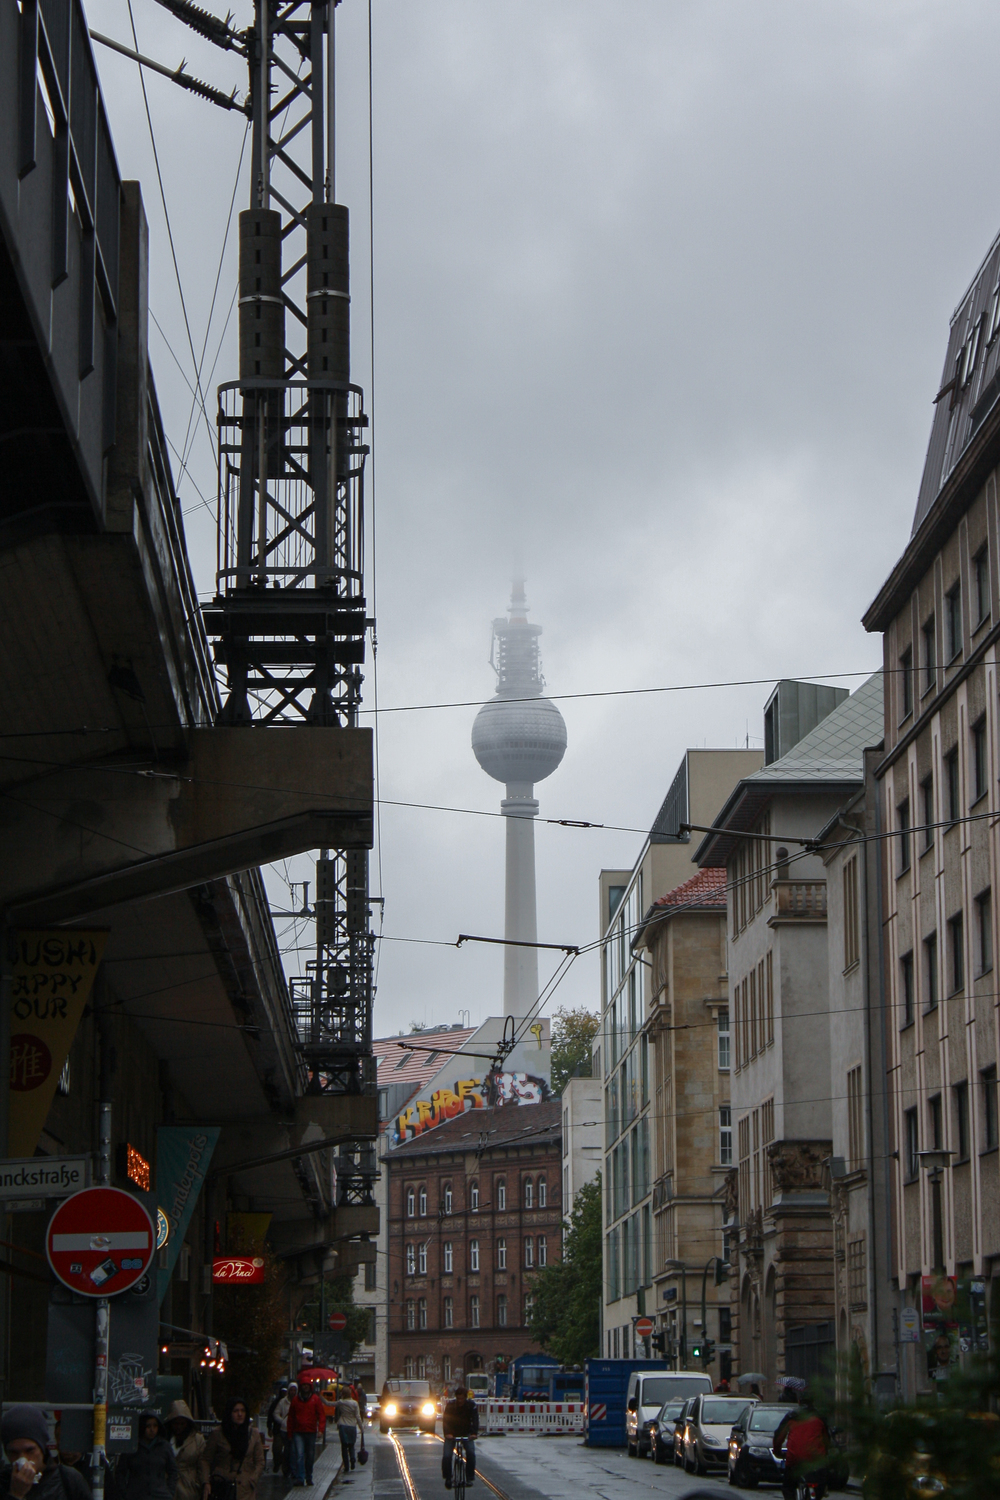 The Fernsehturm TV tower, hiding in the clouds.